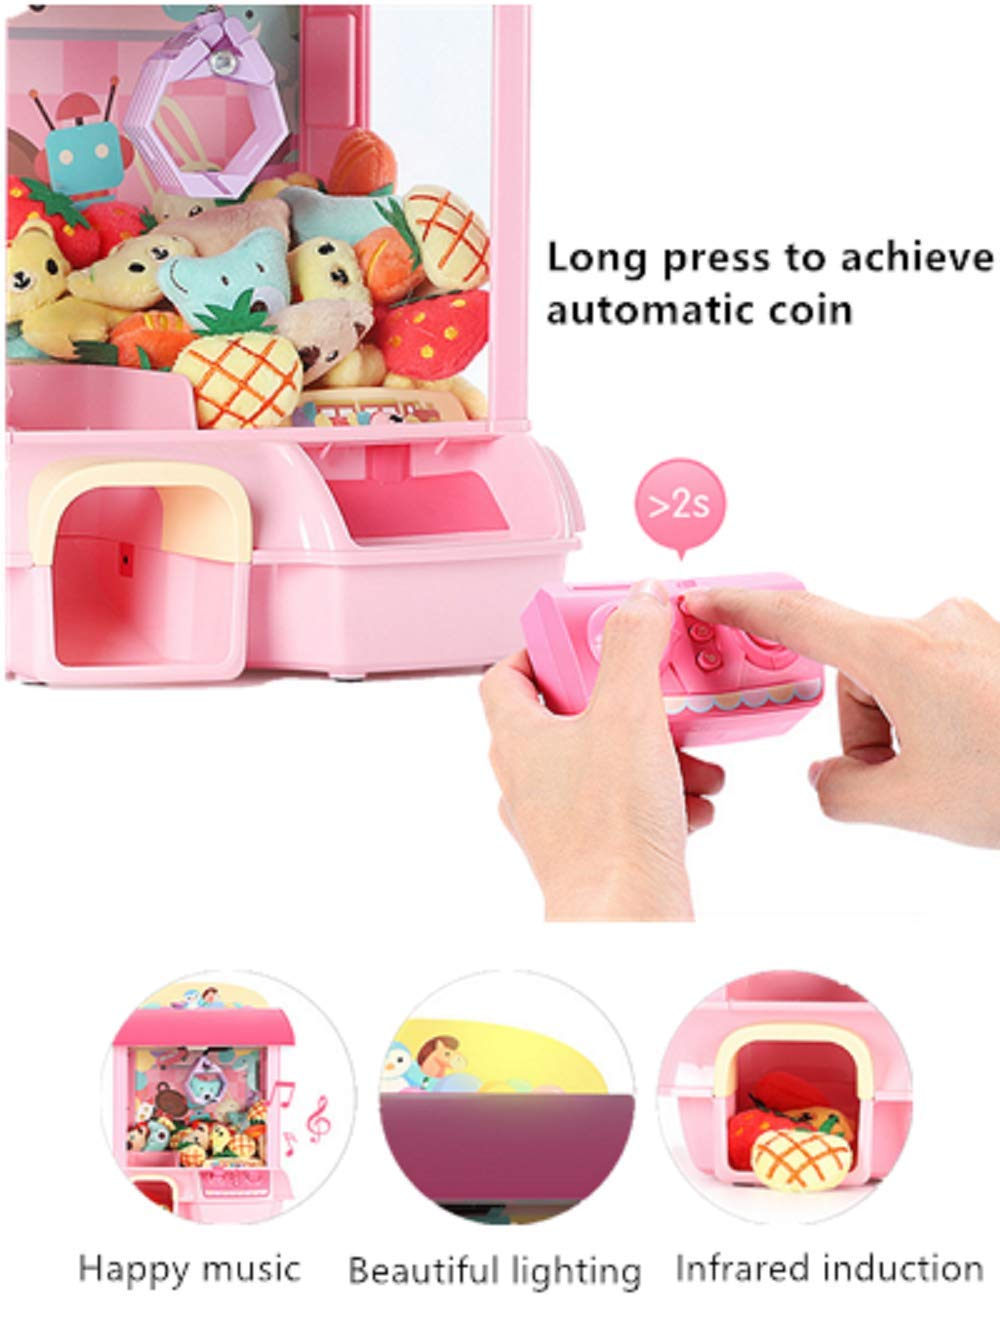 ForBEST Claw Machine Doll Machine with Removable Remote Control, USB Cable, 6 Dolls, Adjustable Sounds and Lights, Best Gift Toy for Kids (Pink) by For BEST (Image #9)